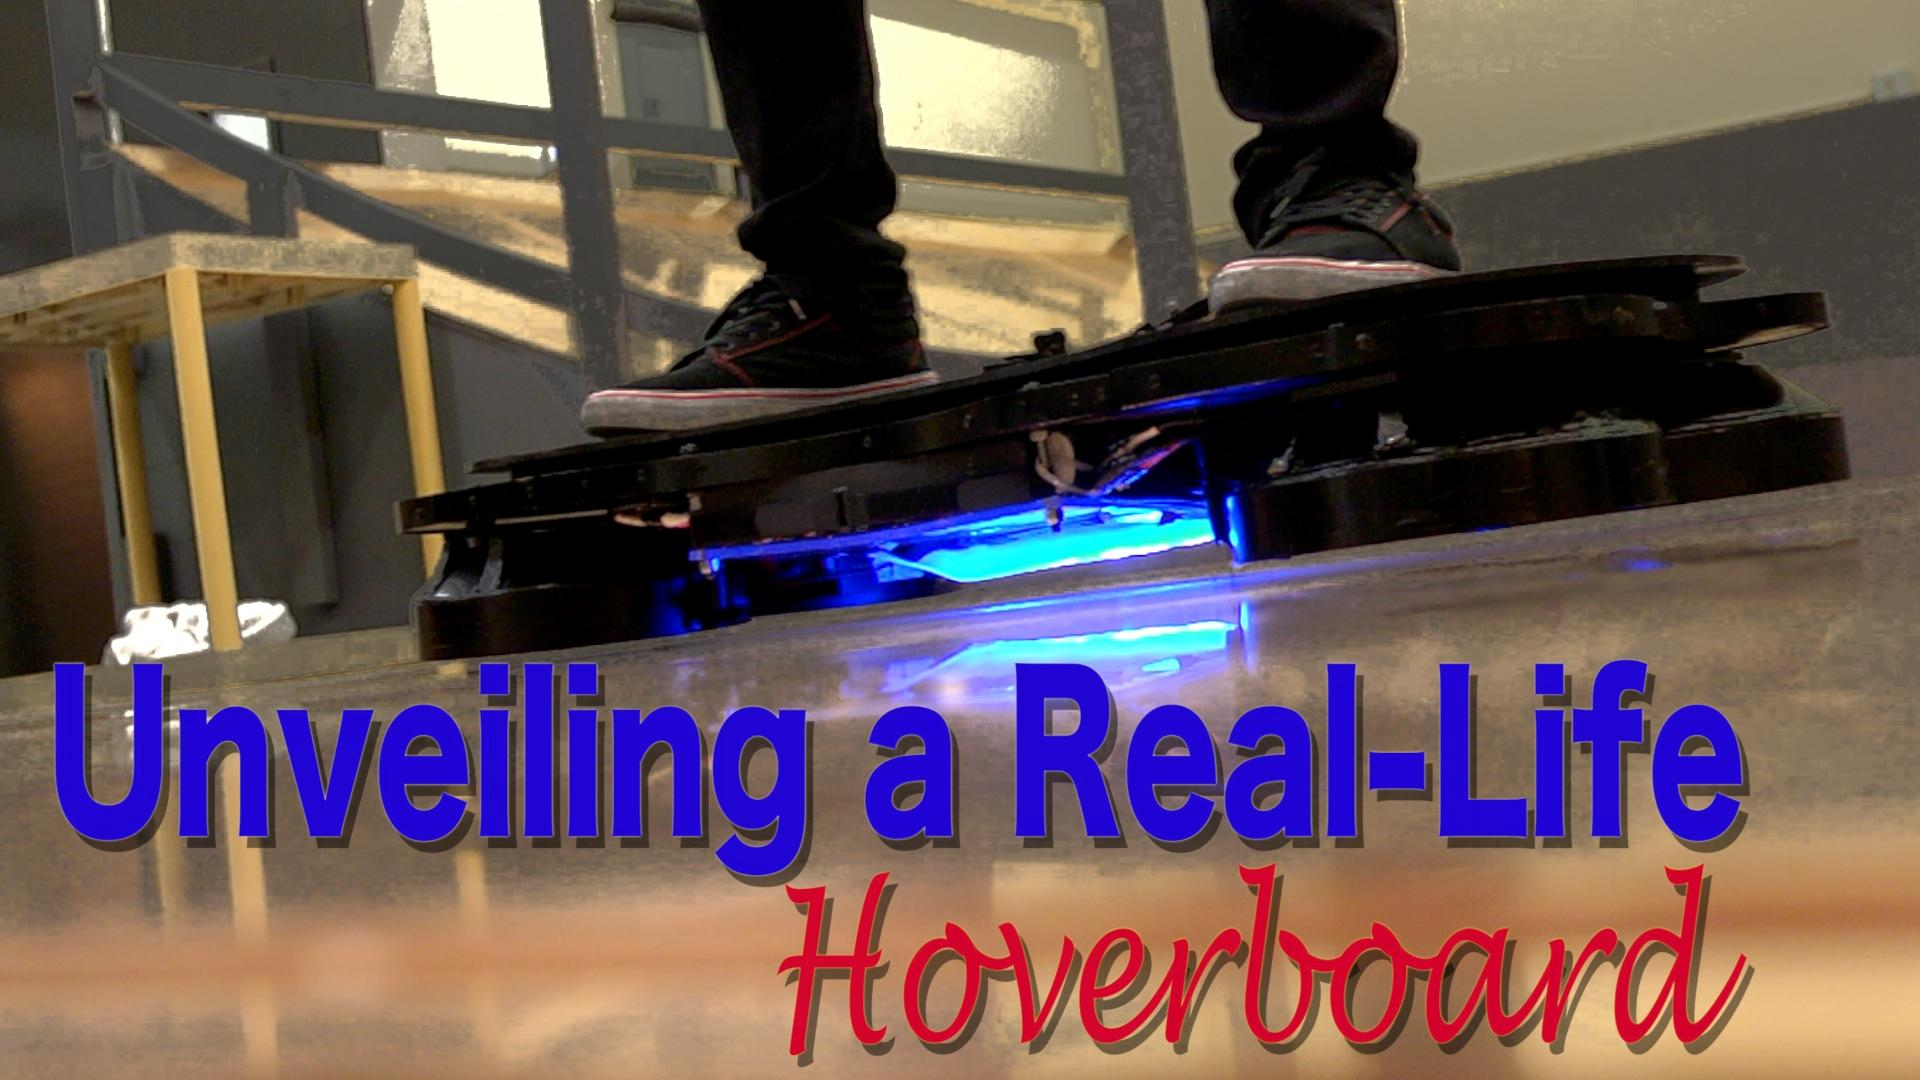 Unveiling a Real-Life Hoverboard